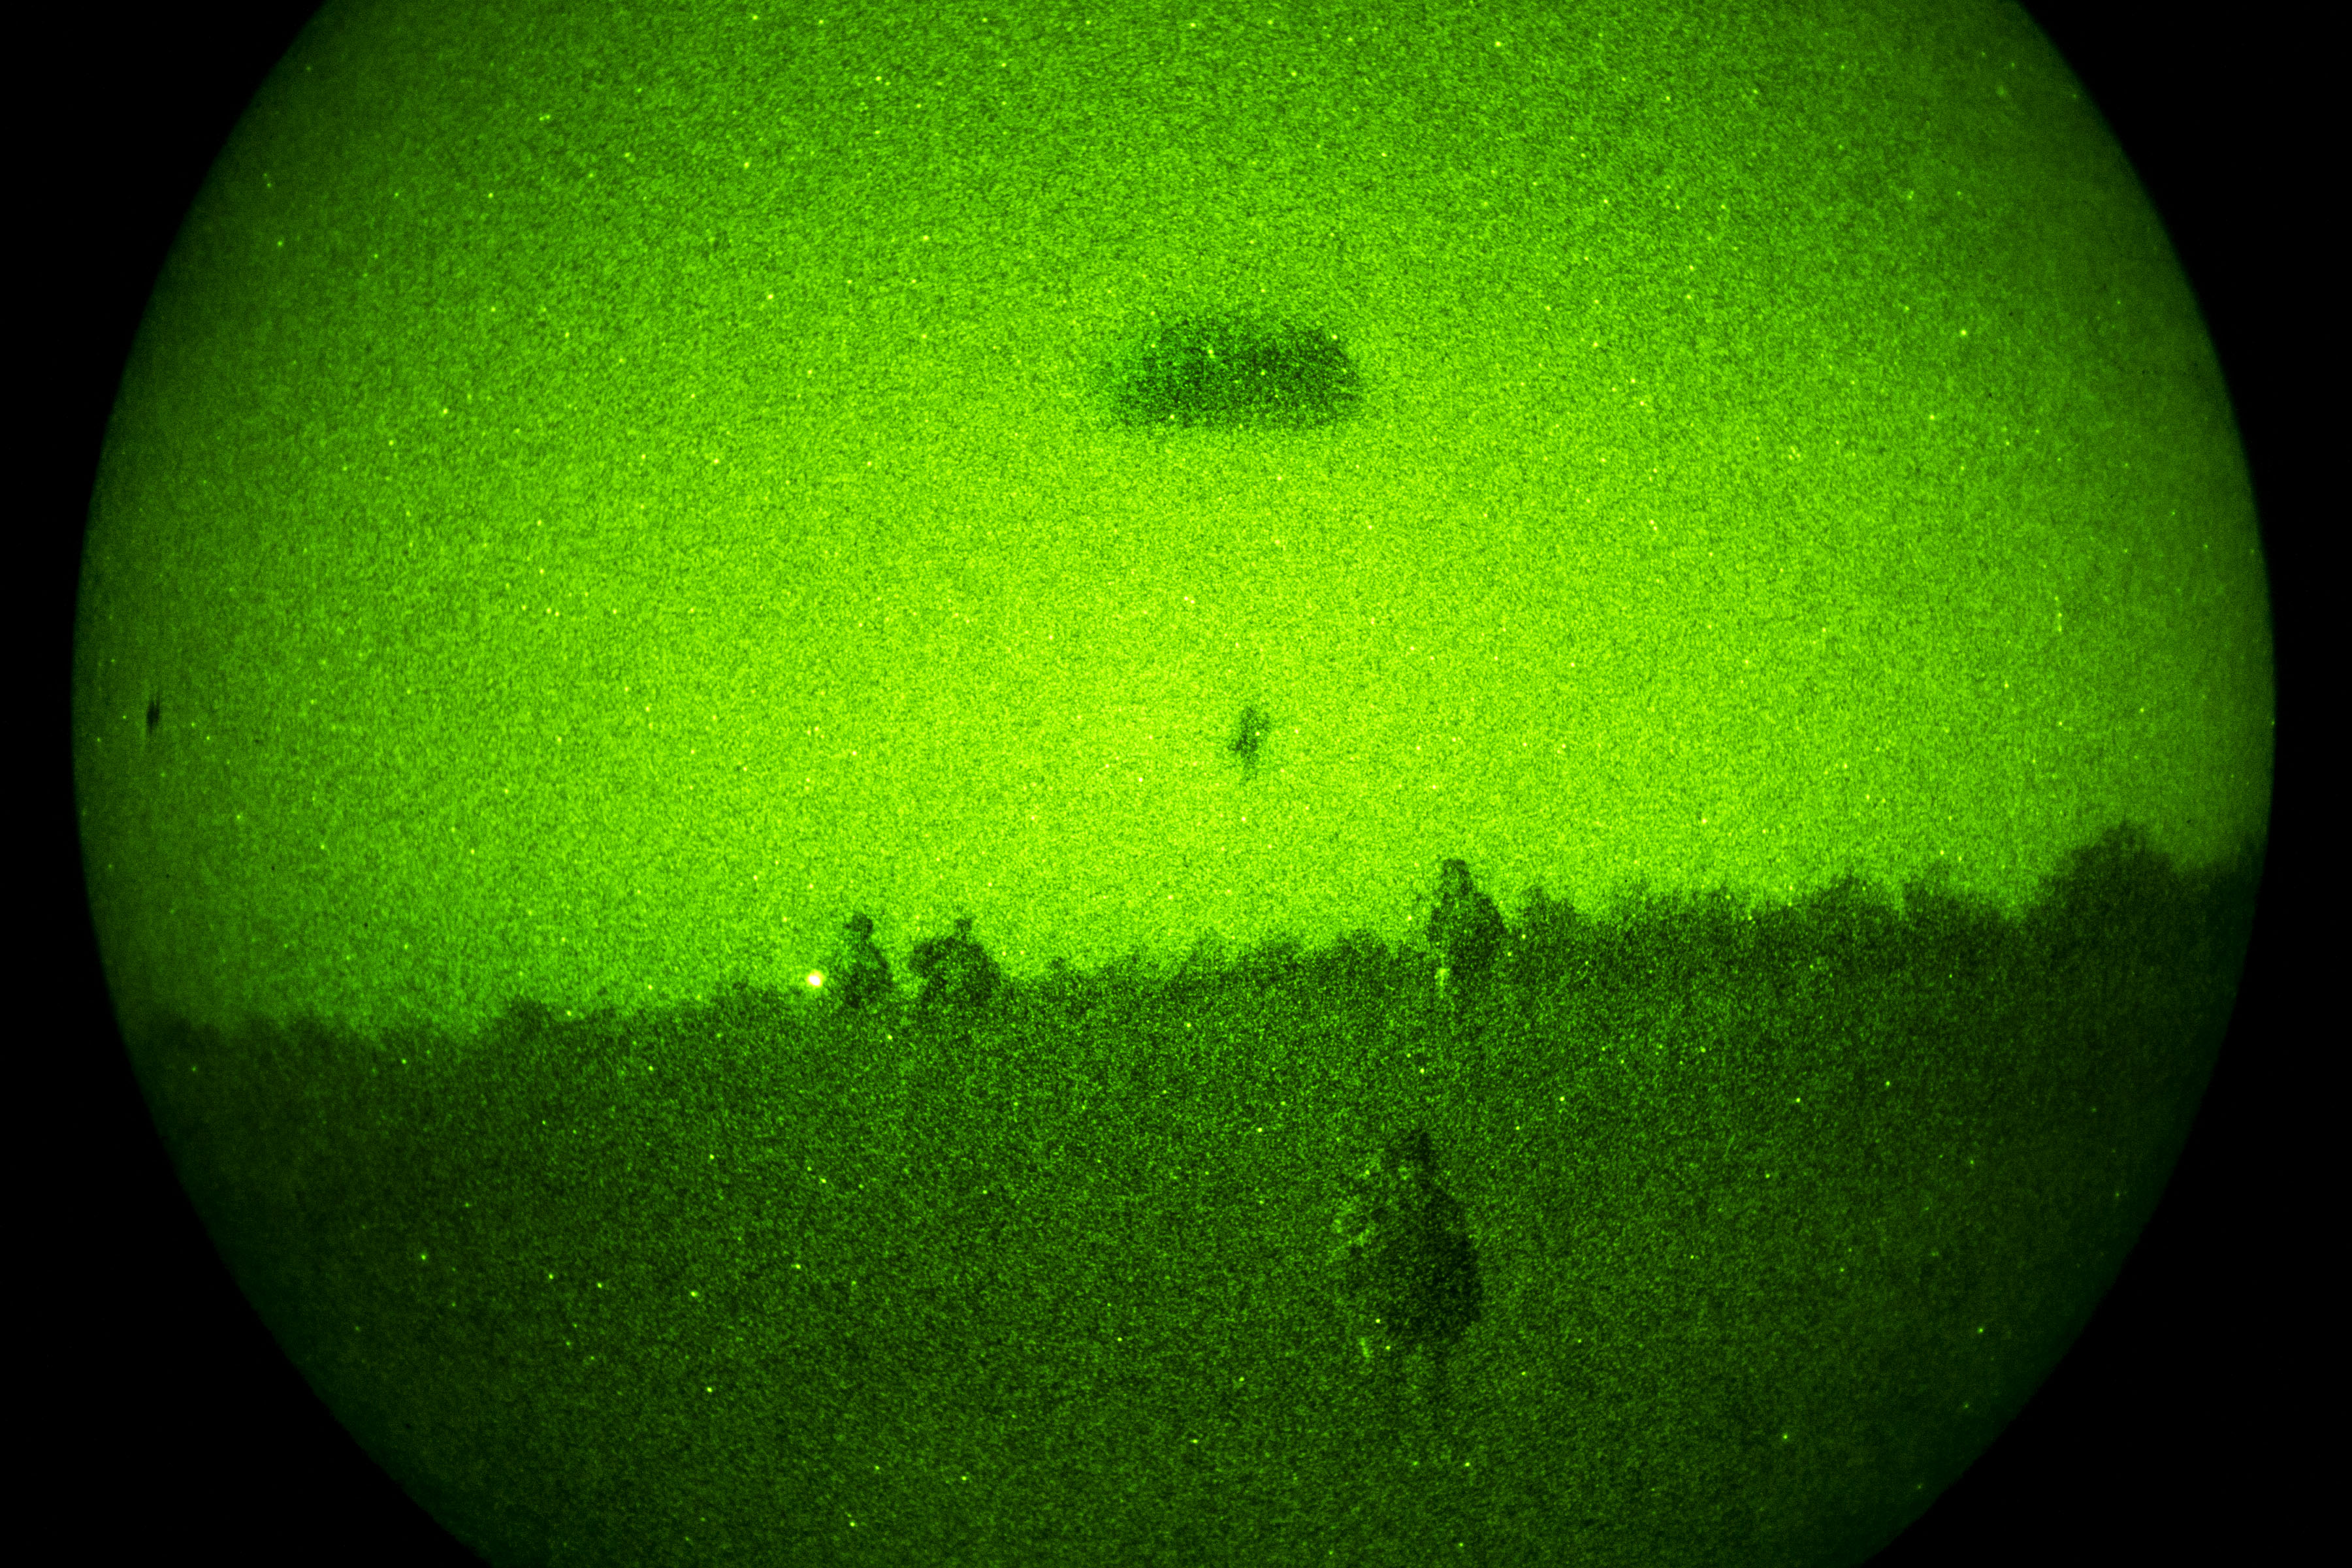 As seen through a night-vision device, Army Green Berets